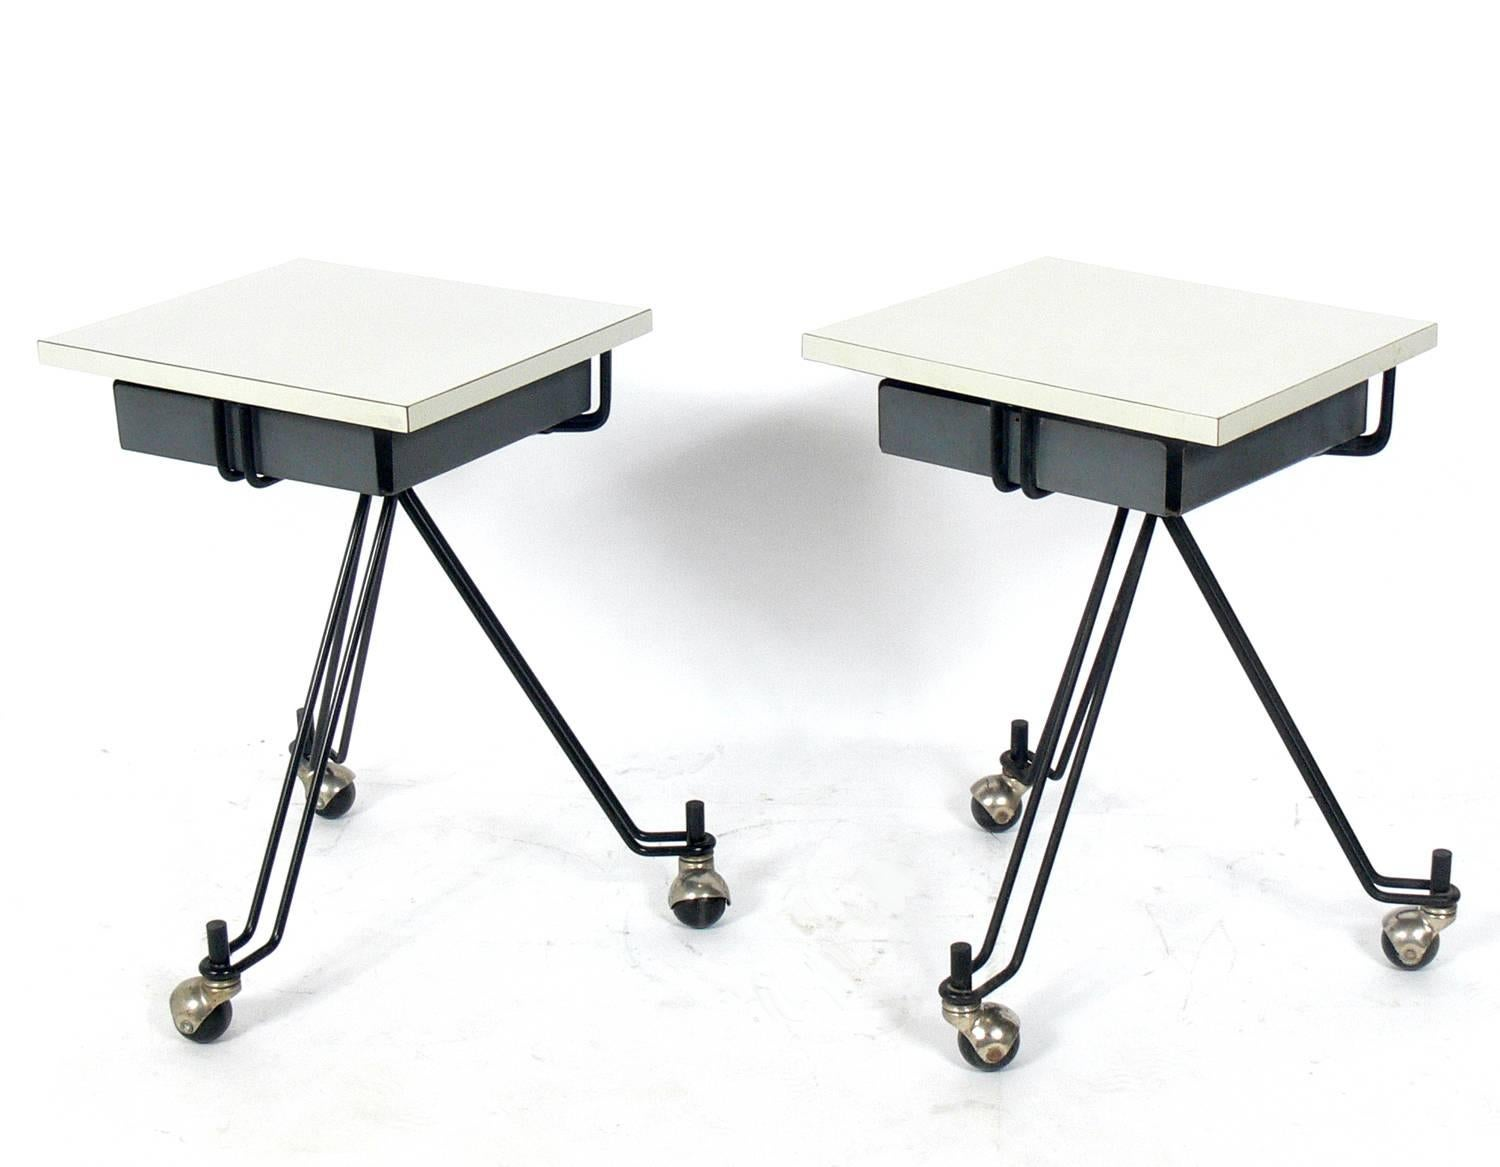 Pair Of Sculptural Tables Or Nightstands By Eliot Noyes For IBM For Sale At  1stdibs